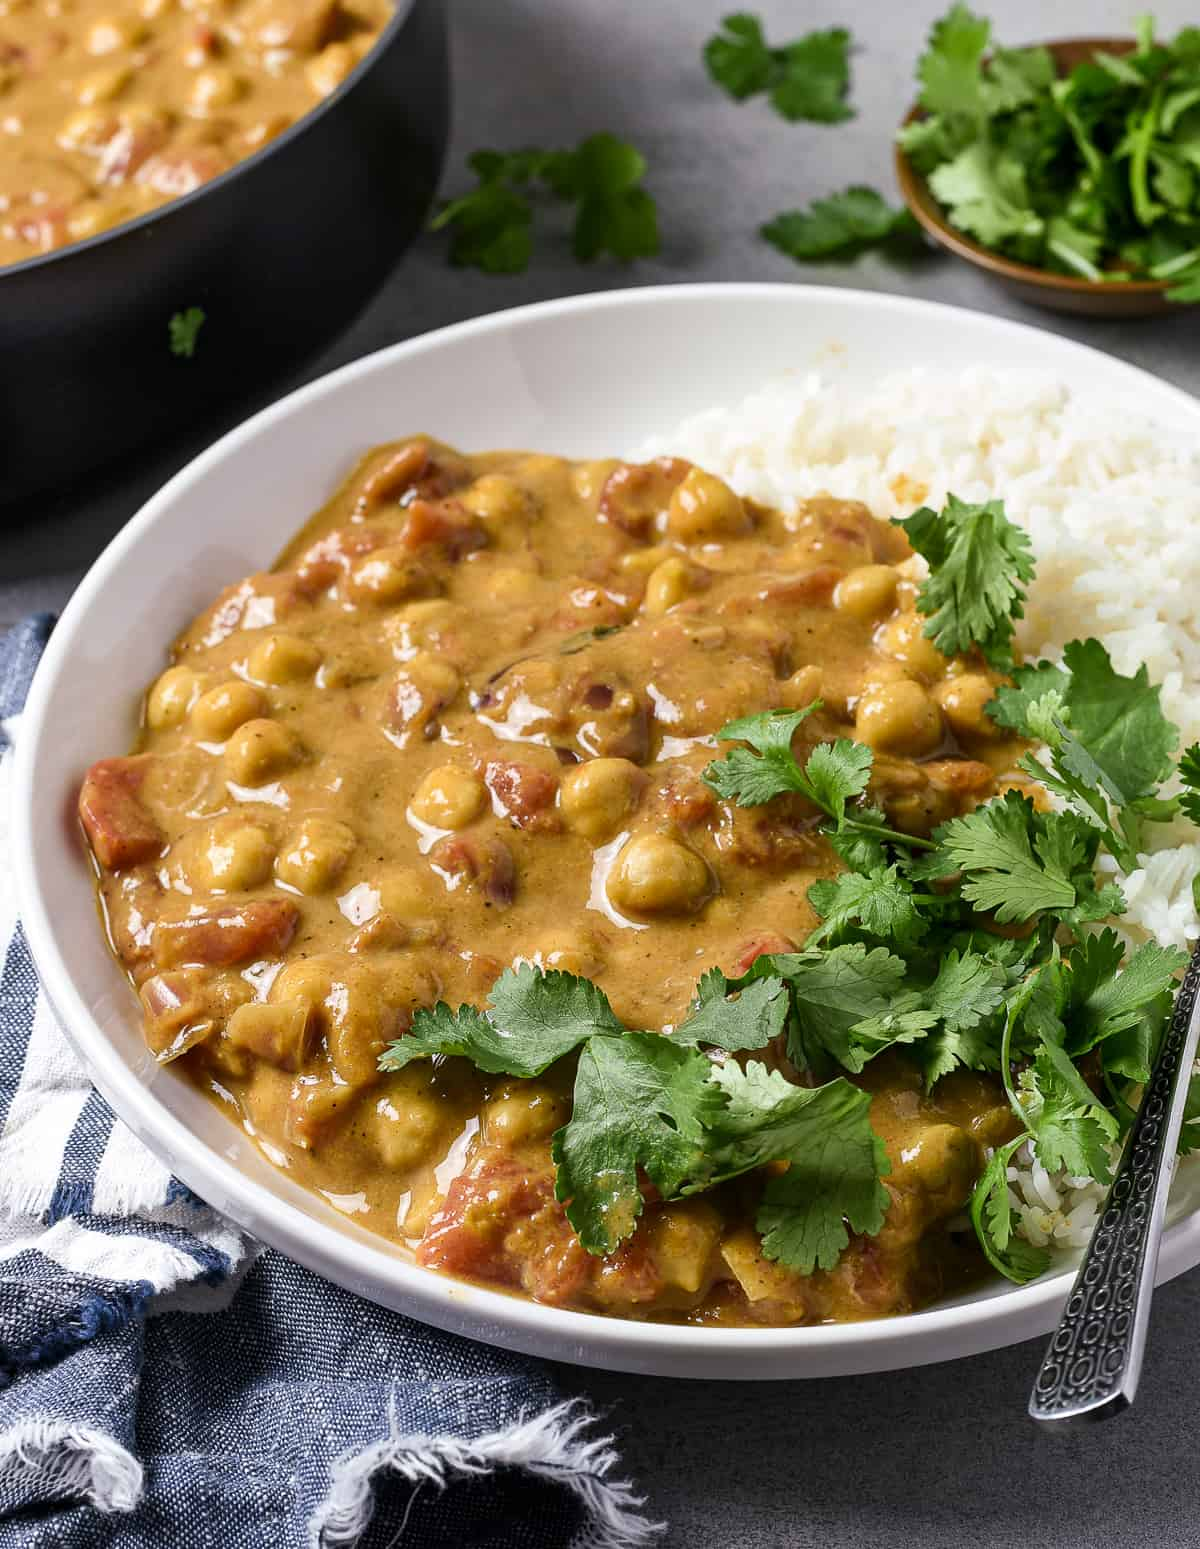 Vegan chickpea curry on top of rice and topped with cilantro.